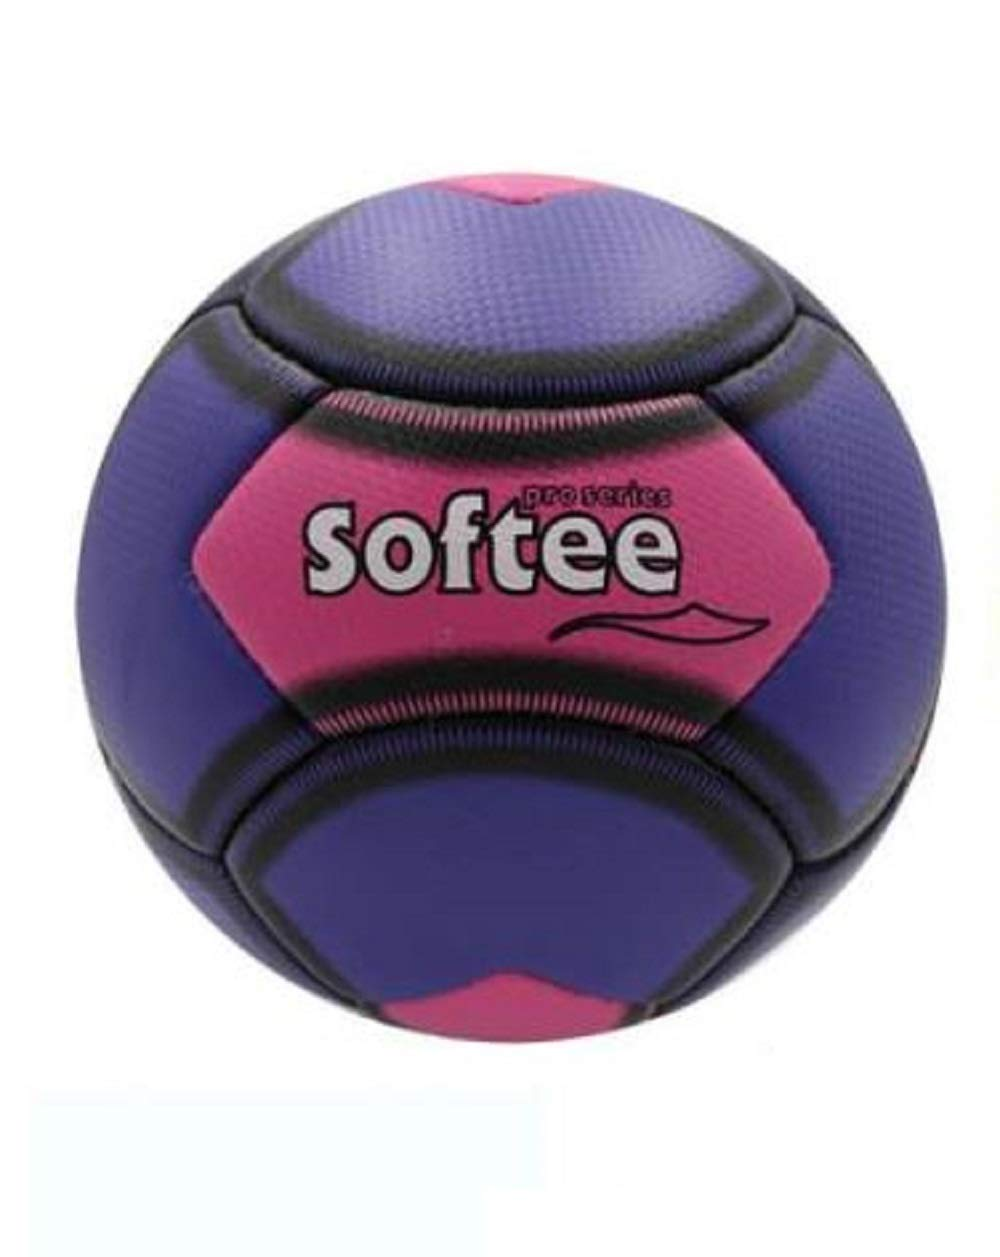 Balon Fútbol Playa Softee Soccer Beach Violeta/Rosa: Amazon.es ...